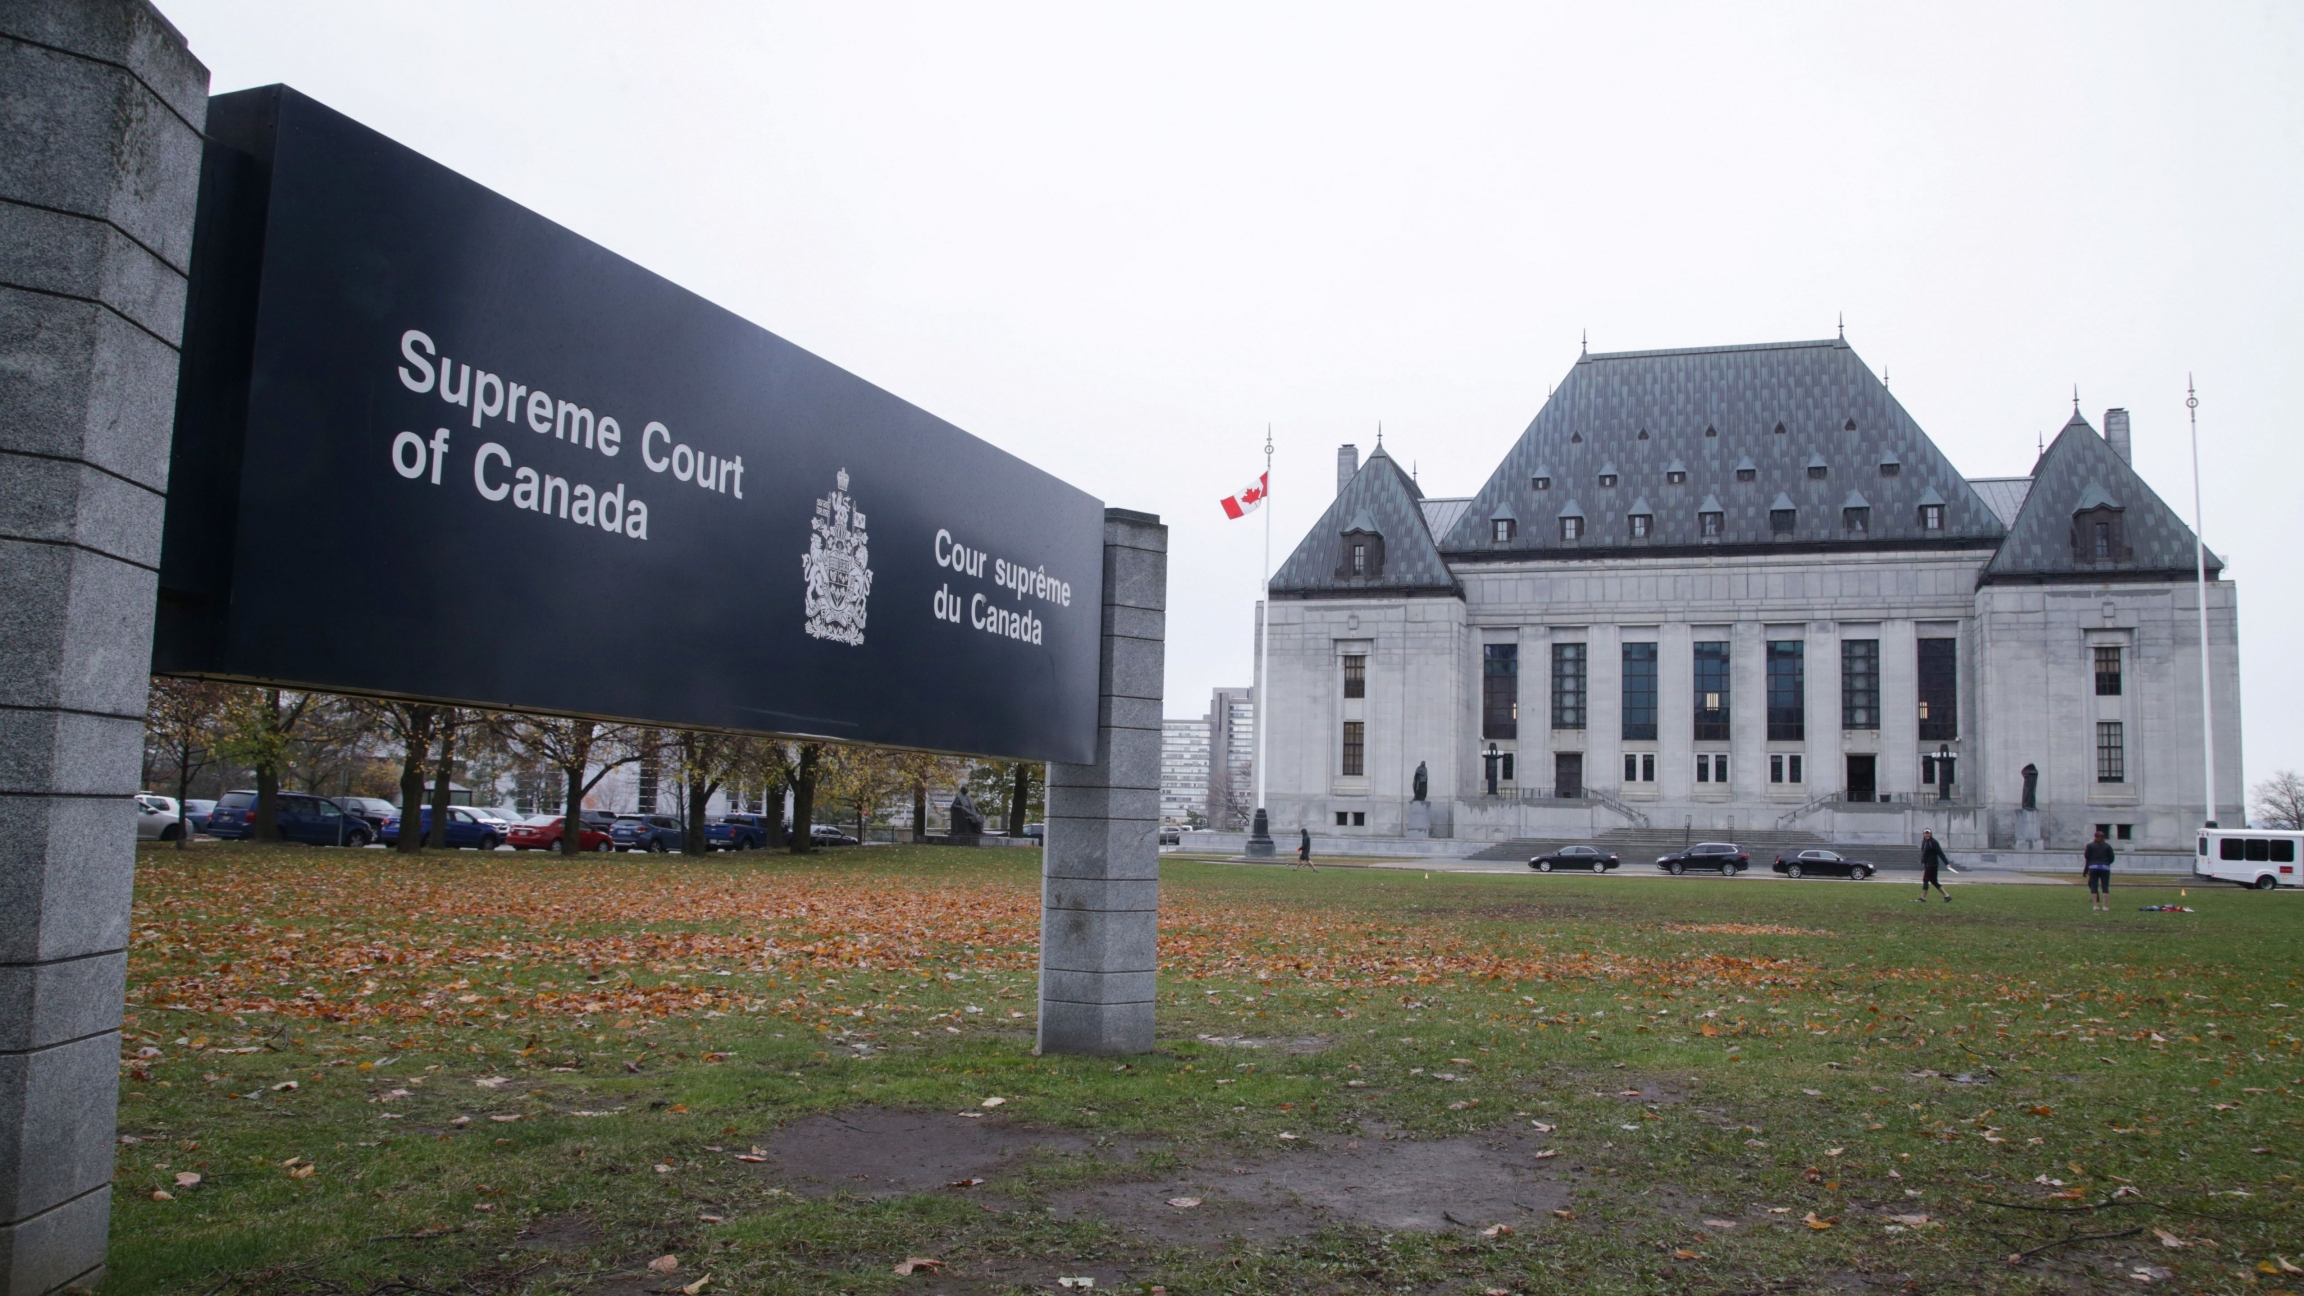 The Supreme Court of Canada is seen in Ottawa, Ontario, Canada, Nov. 4, 2019.